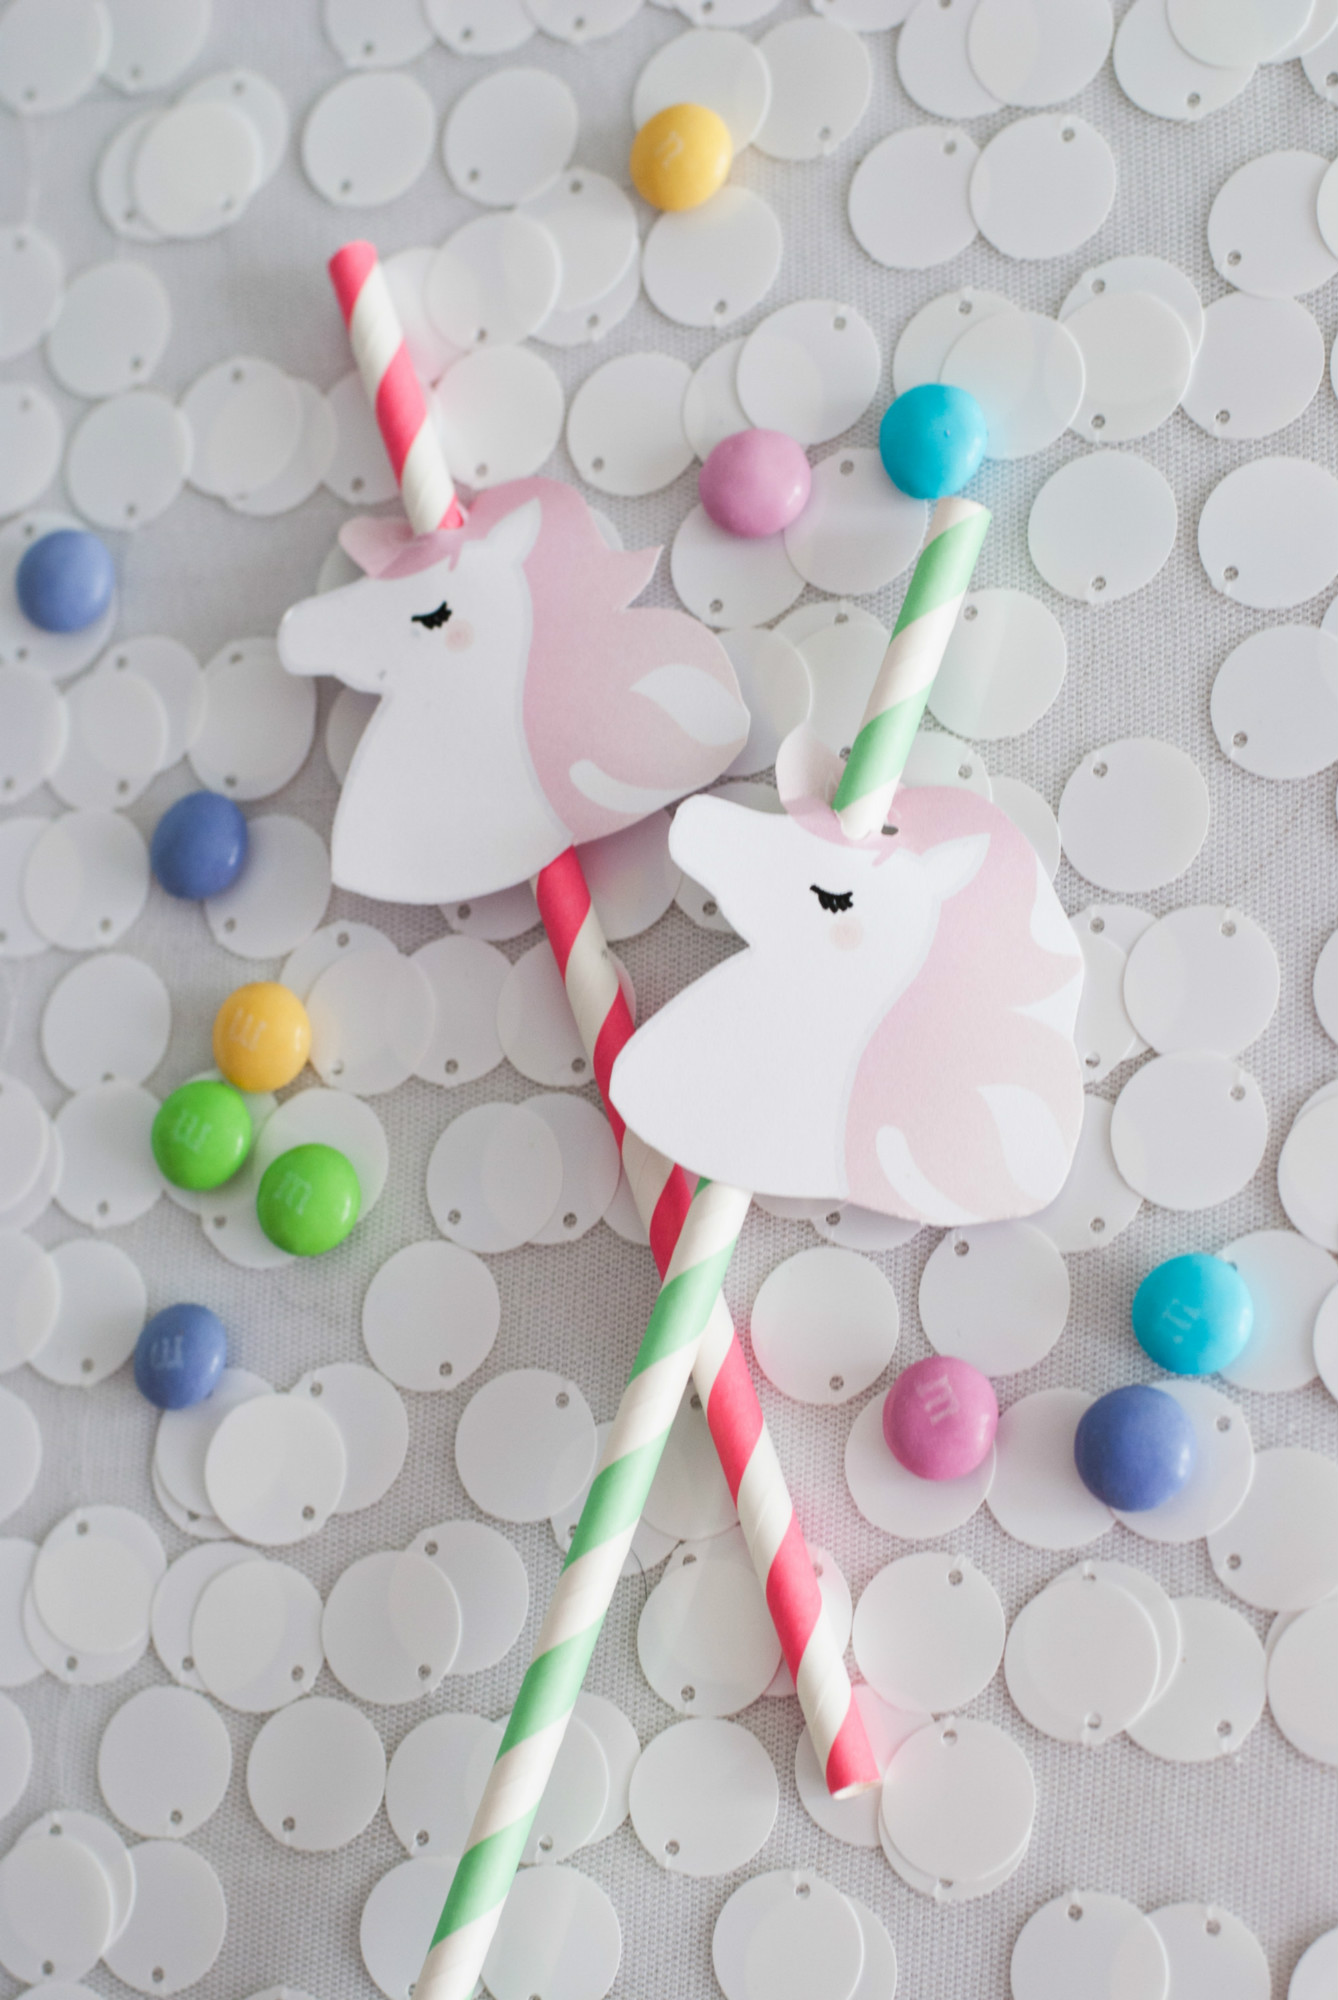 Unicorn straws from Magical Unicorn Party | Black Twine | Itsy Belle Studio